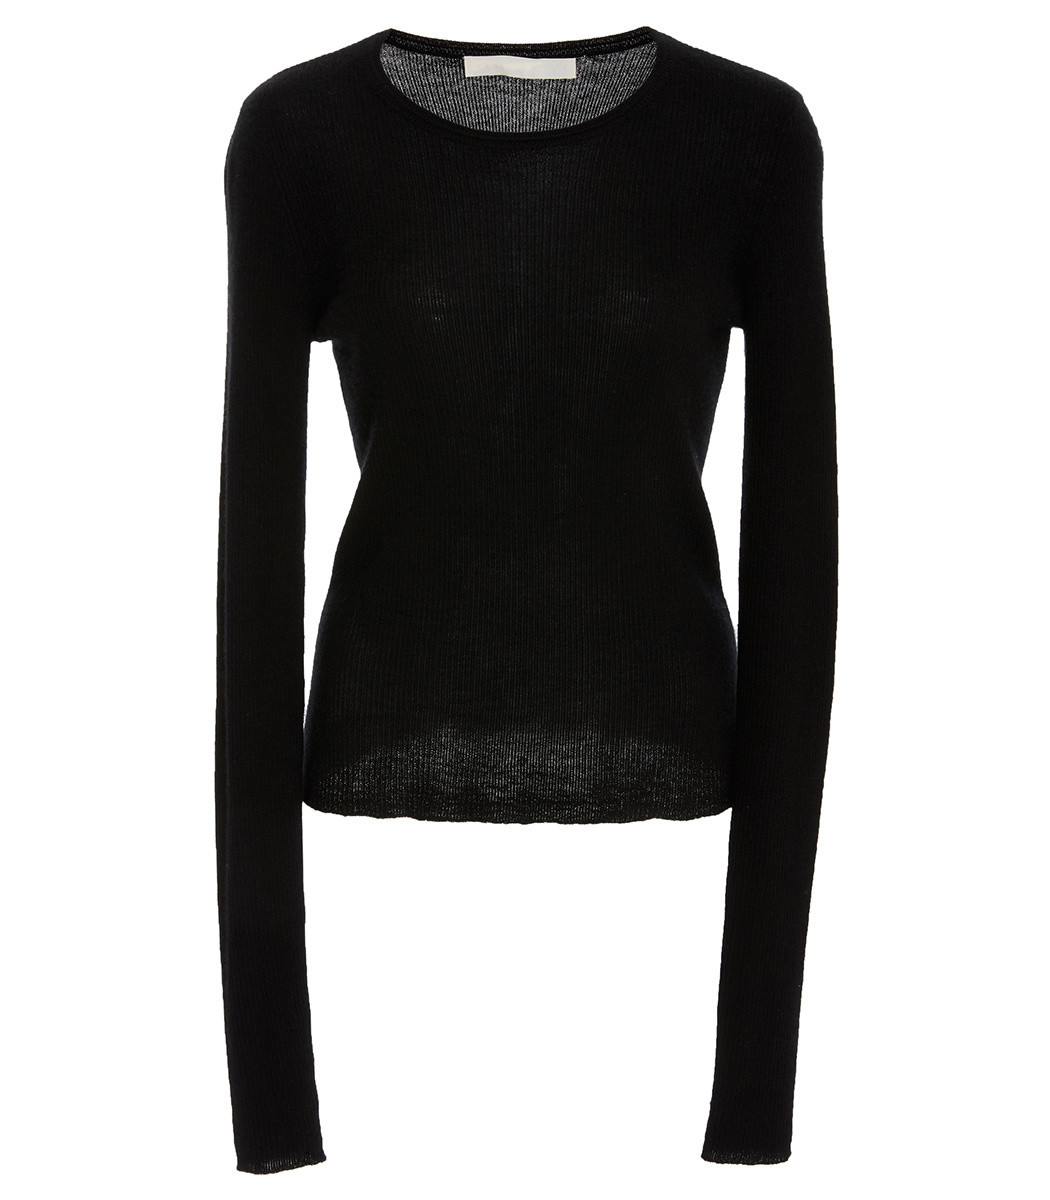 MARISA WITKIN Fine Gauge Cashmere Sweater With Removable Turtleneck in Black